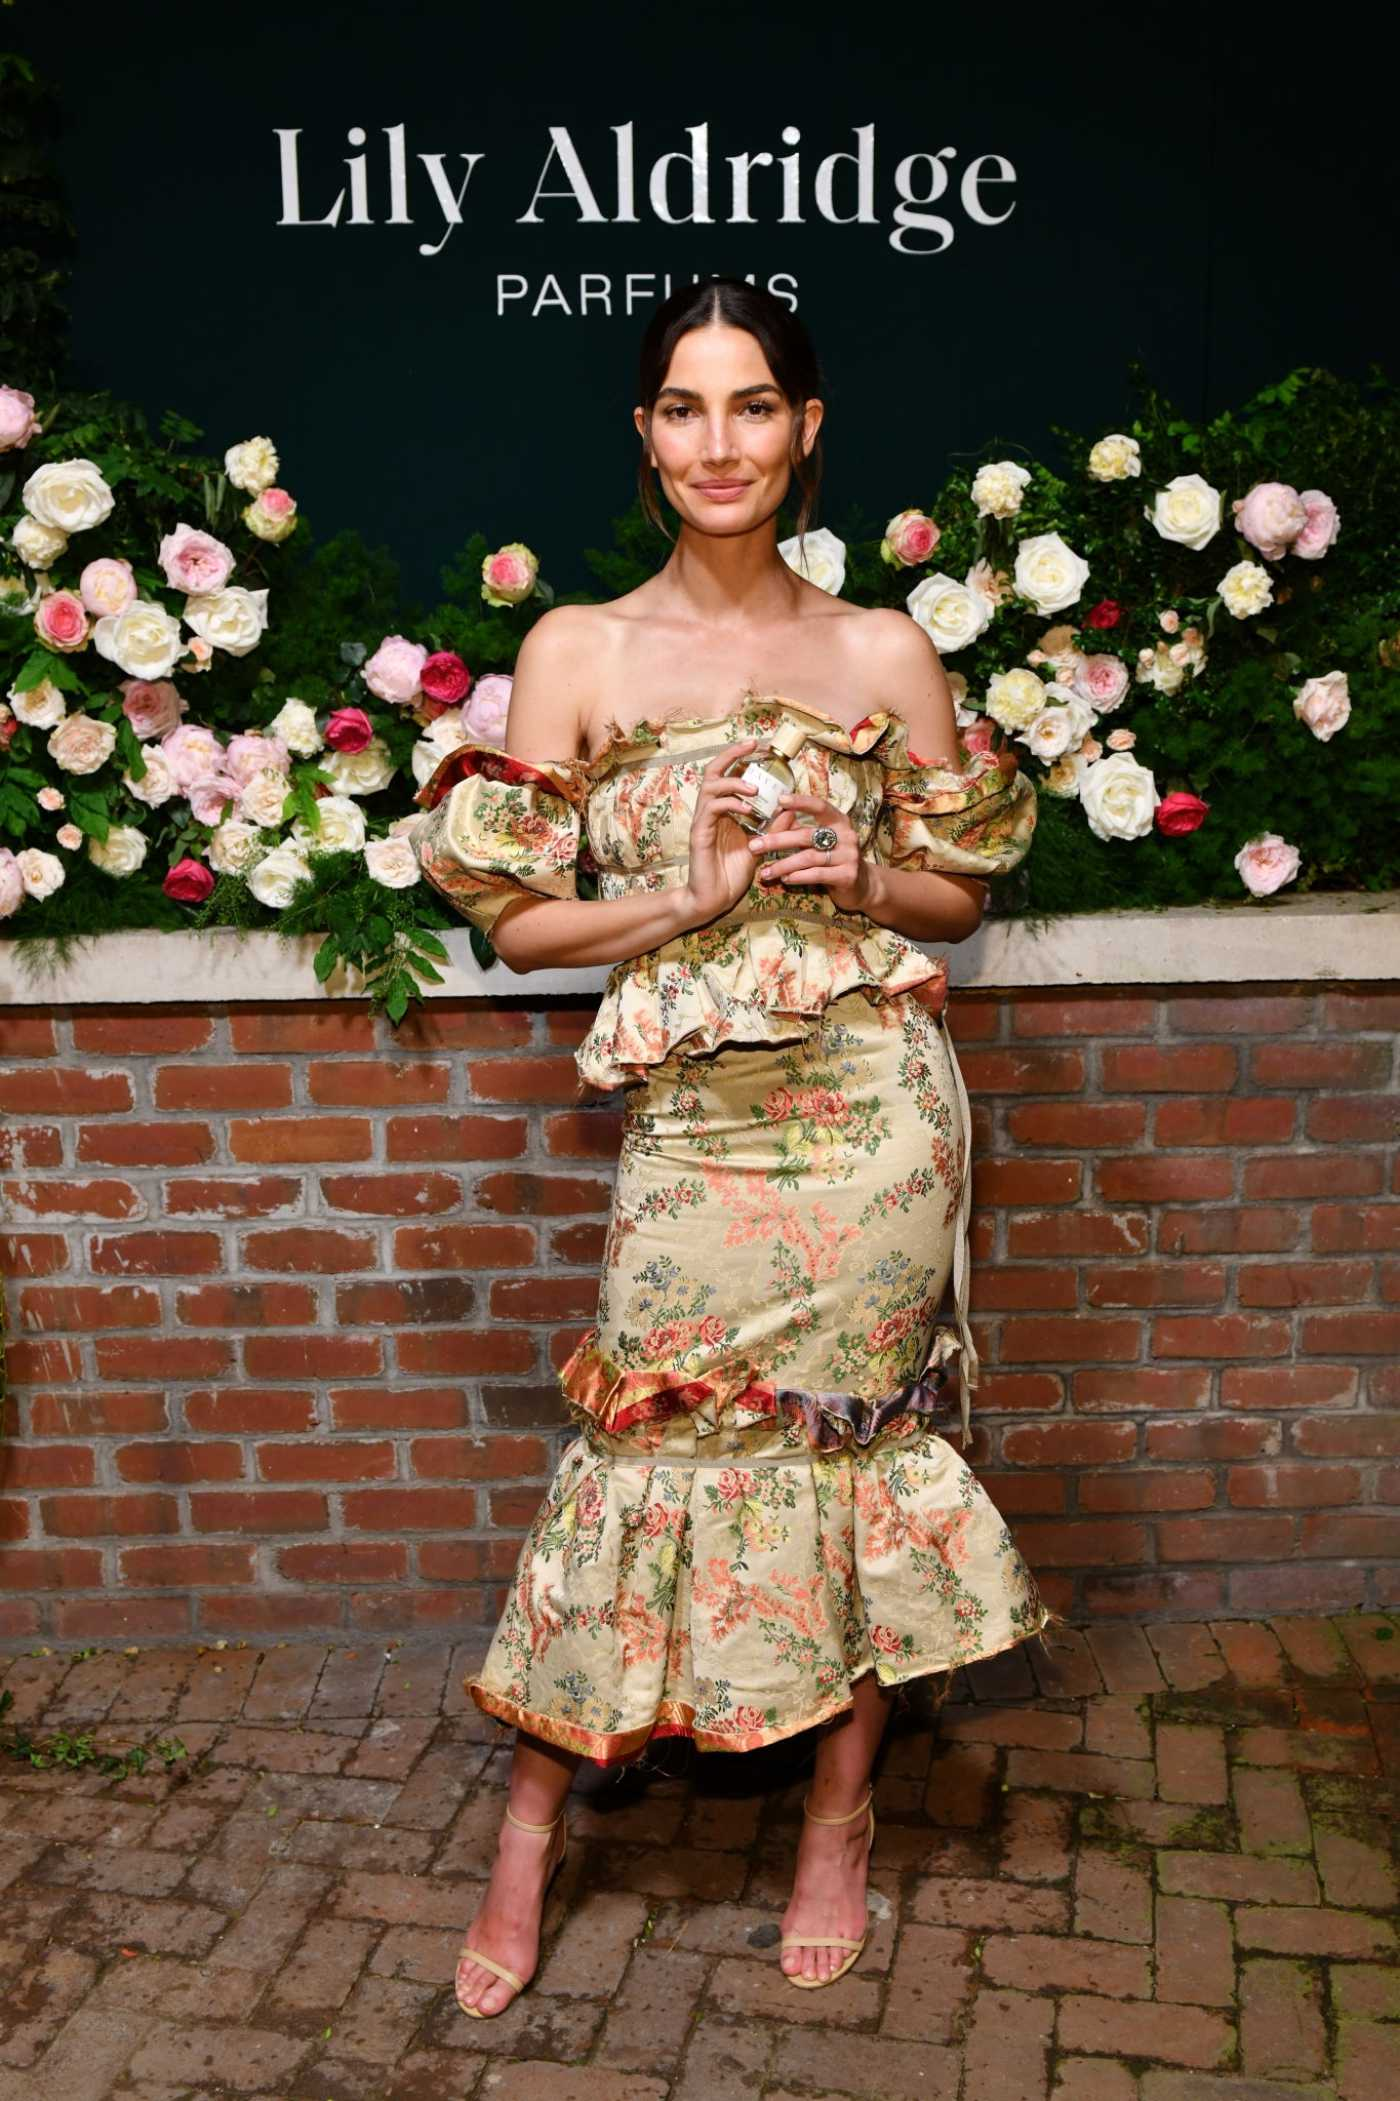 Lily Aldridge Attends the Lily Aldridge Parfums Launch Event at the Bowery Hotel in NYC 09/08/2019